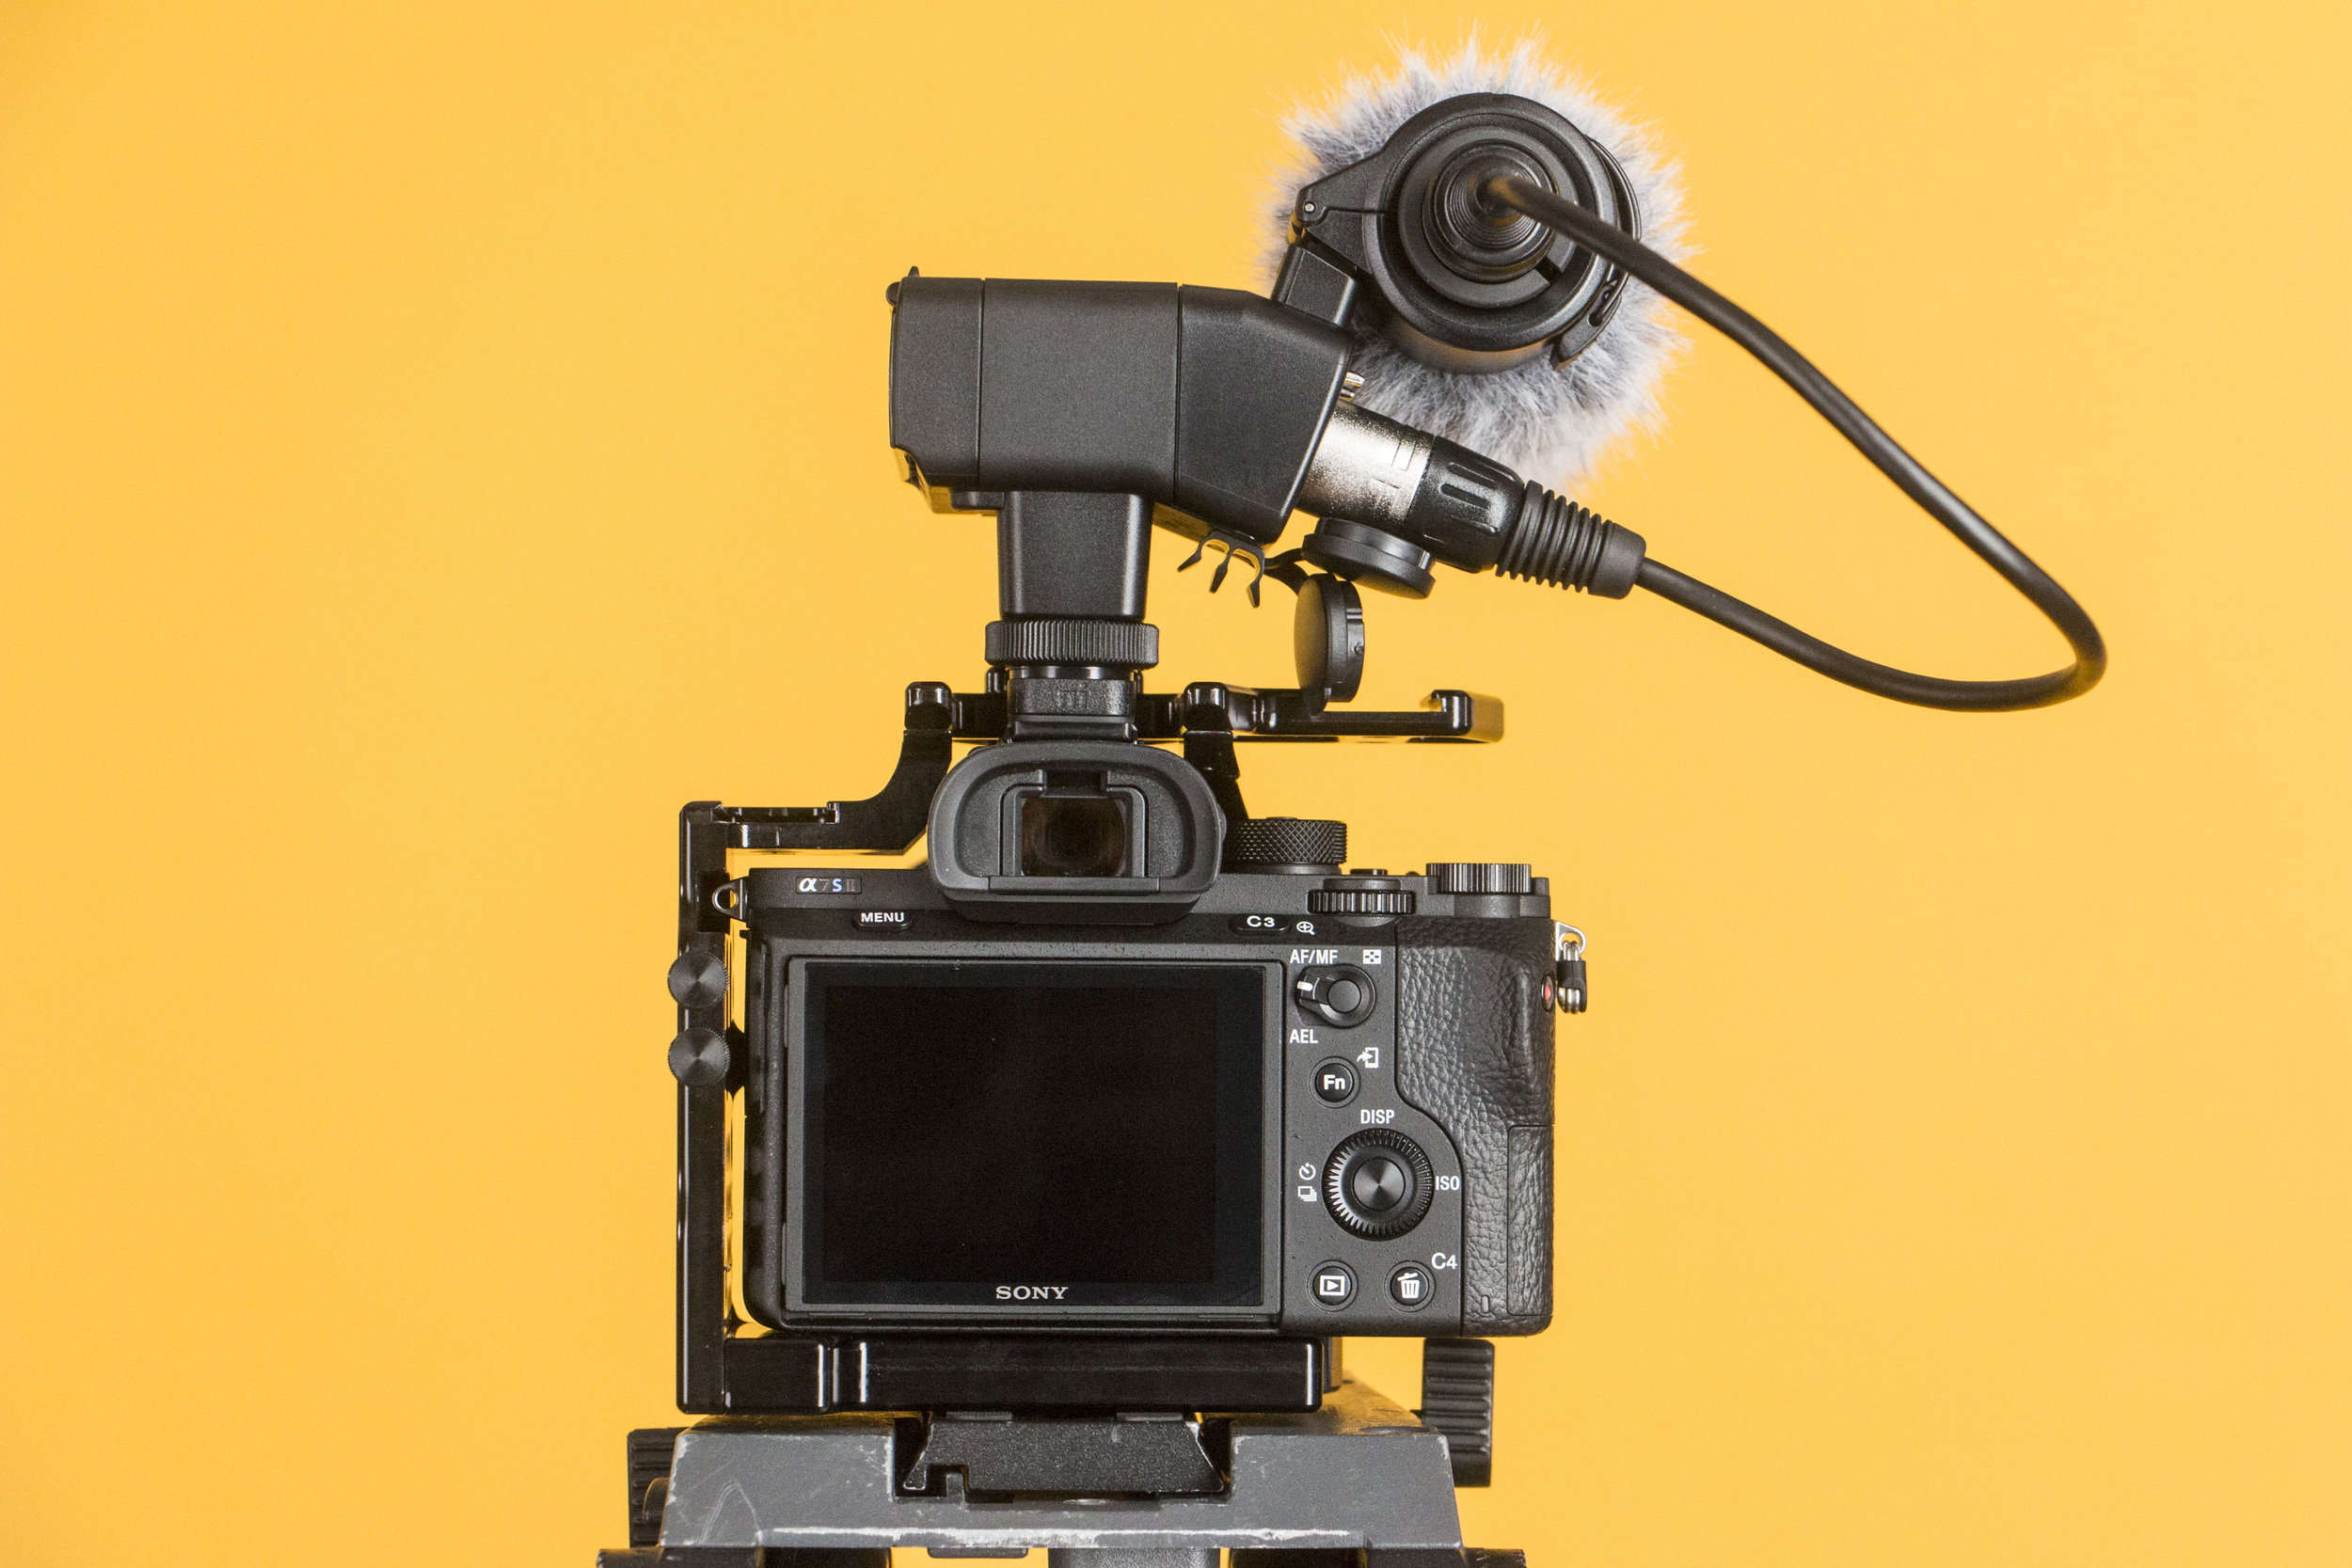 The Sony XLR K2M mounts directly to a hot shoe